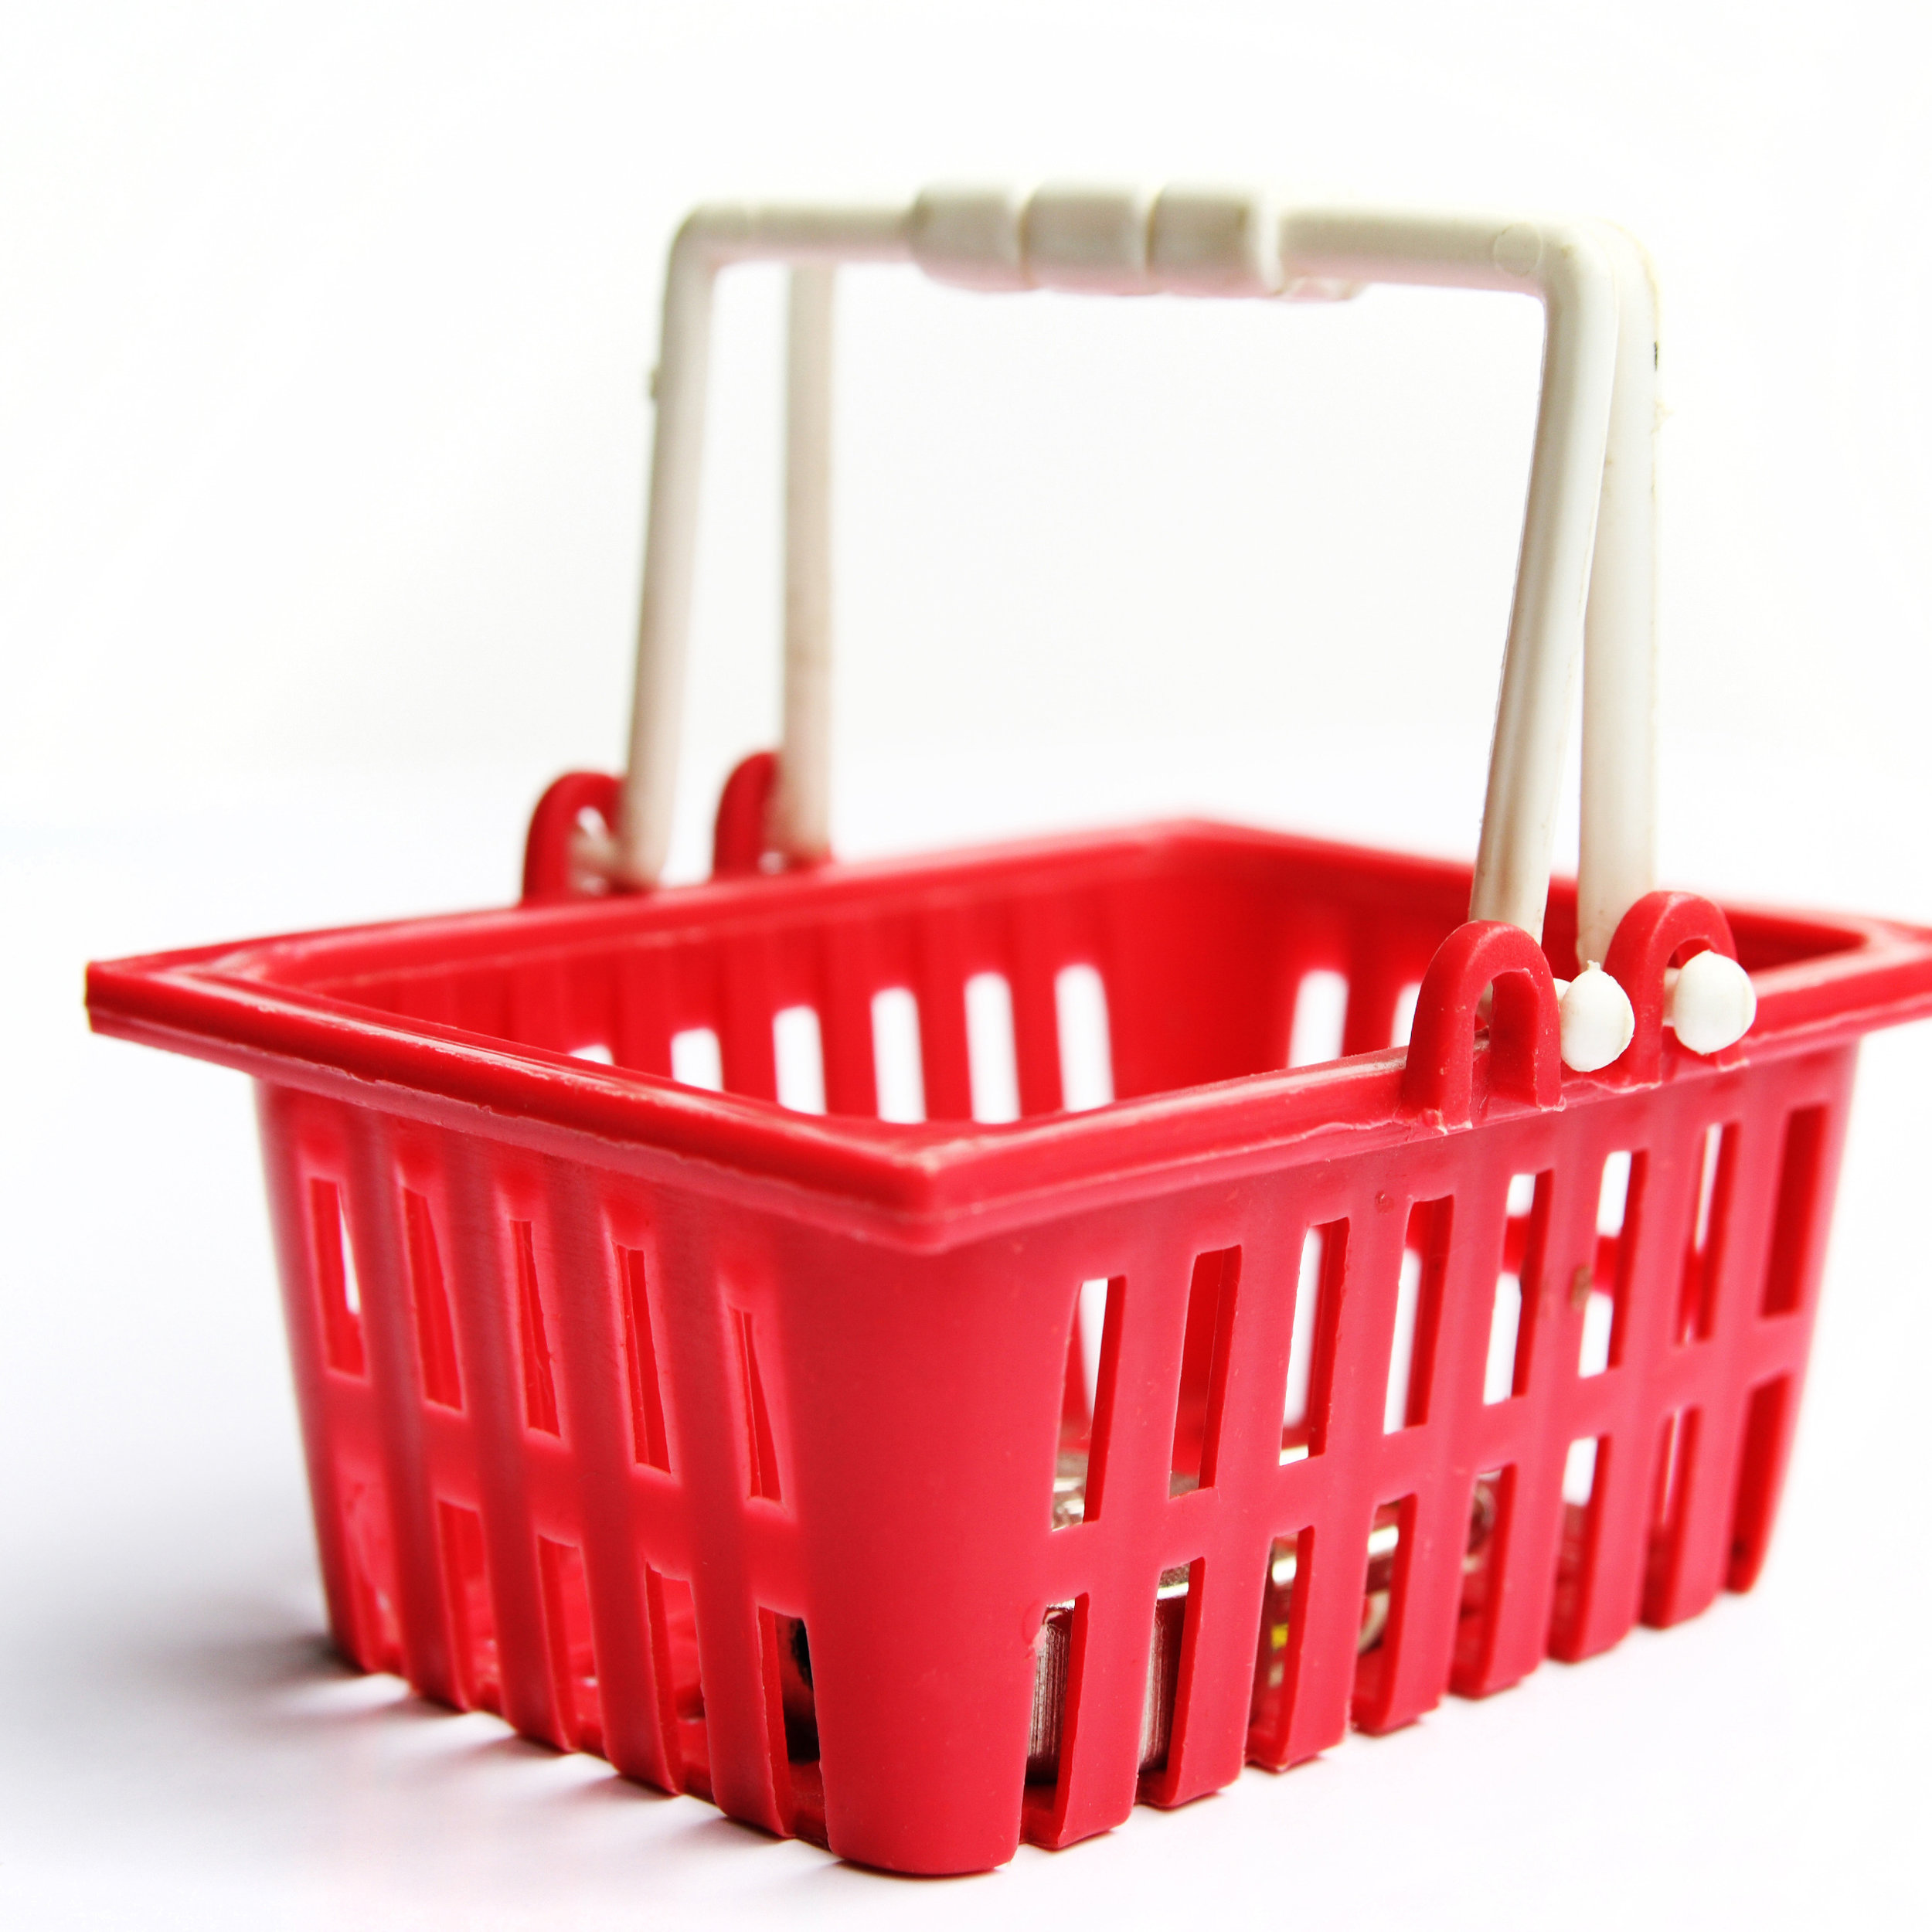 shopping-cart_M1-kQwDd.jpg